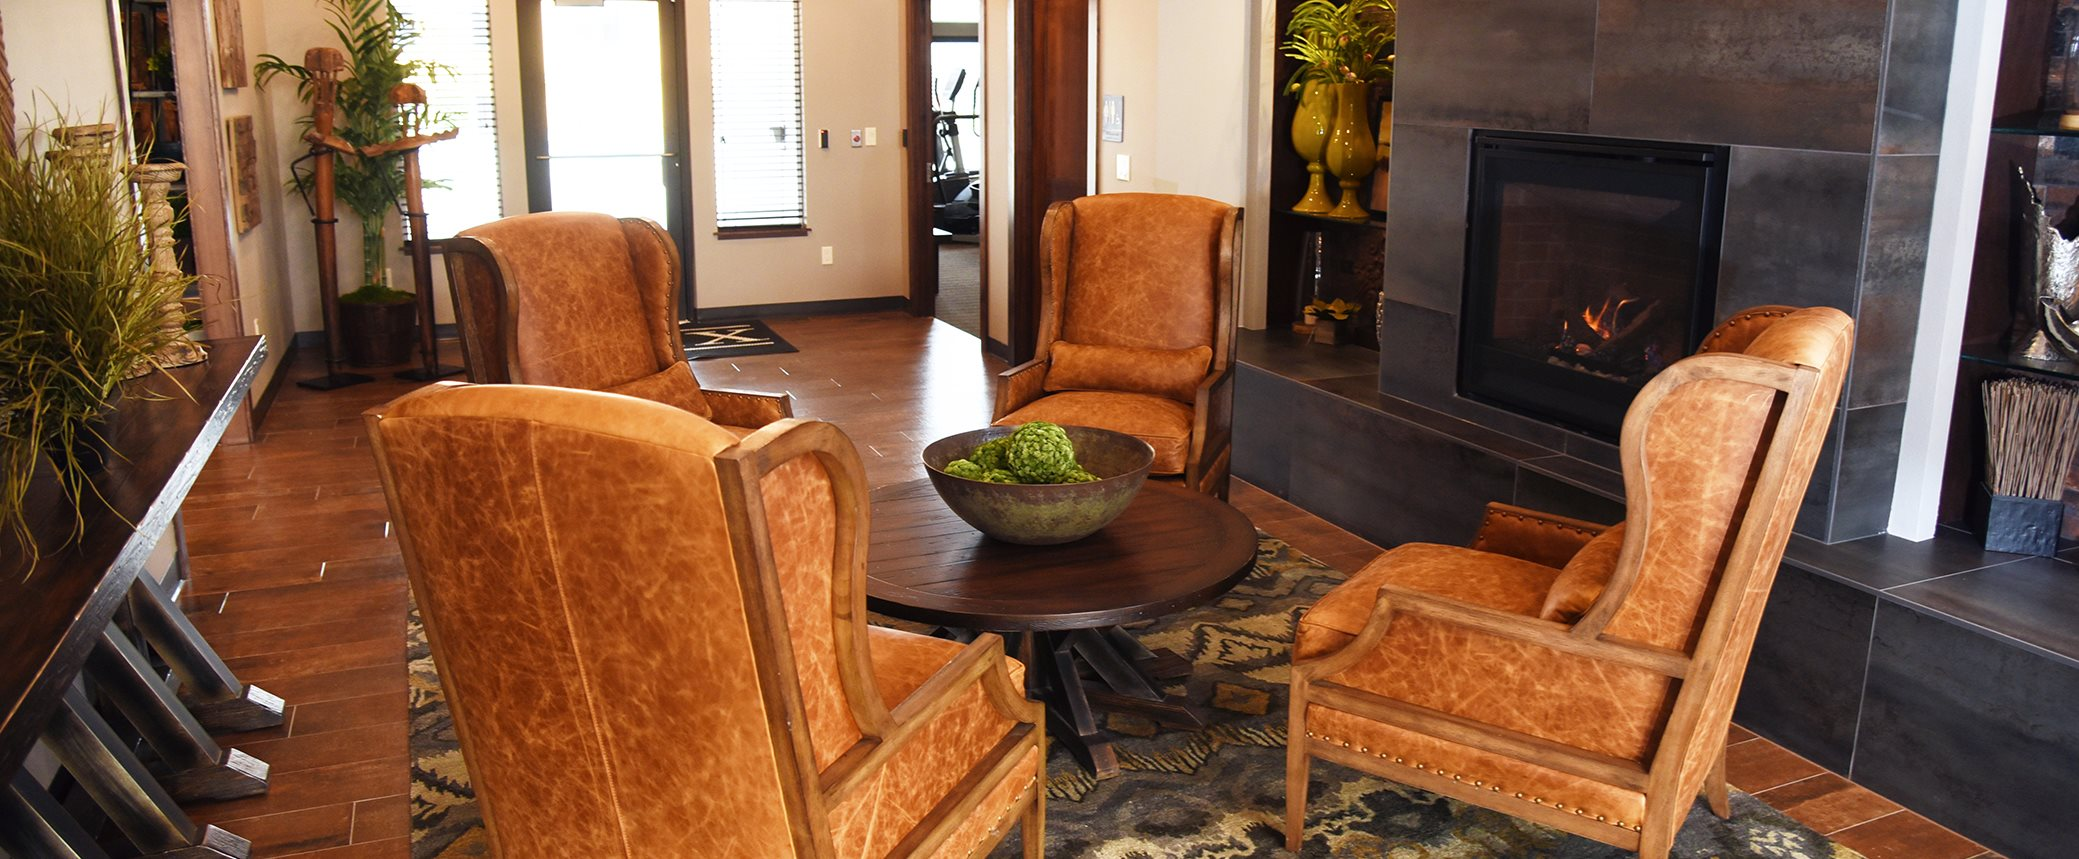 Lounge Area With Fireplace at The Brix Apartments, Washington, 99037